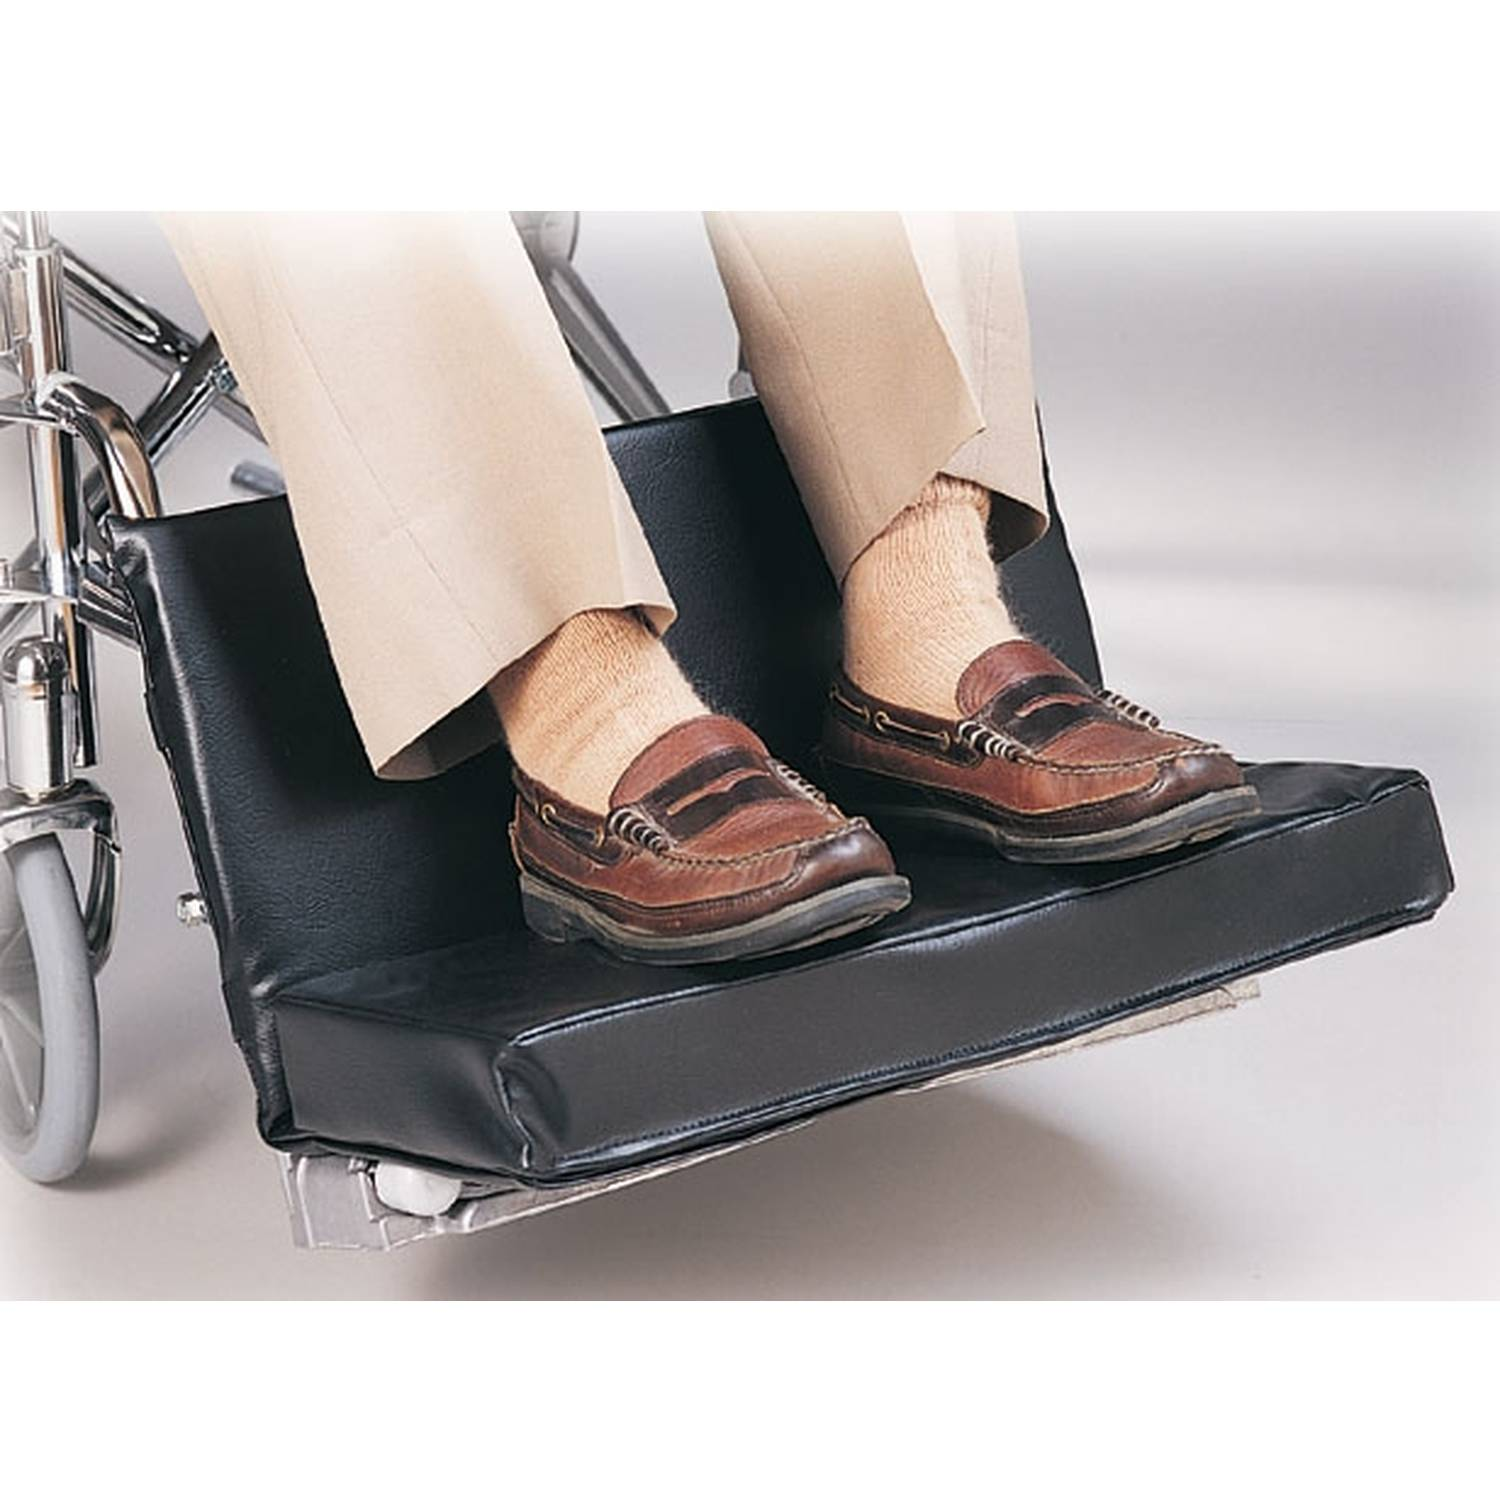 SKIL-CARE Two-Piece Footrest Extender